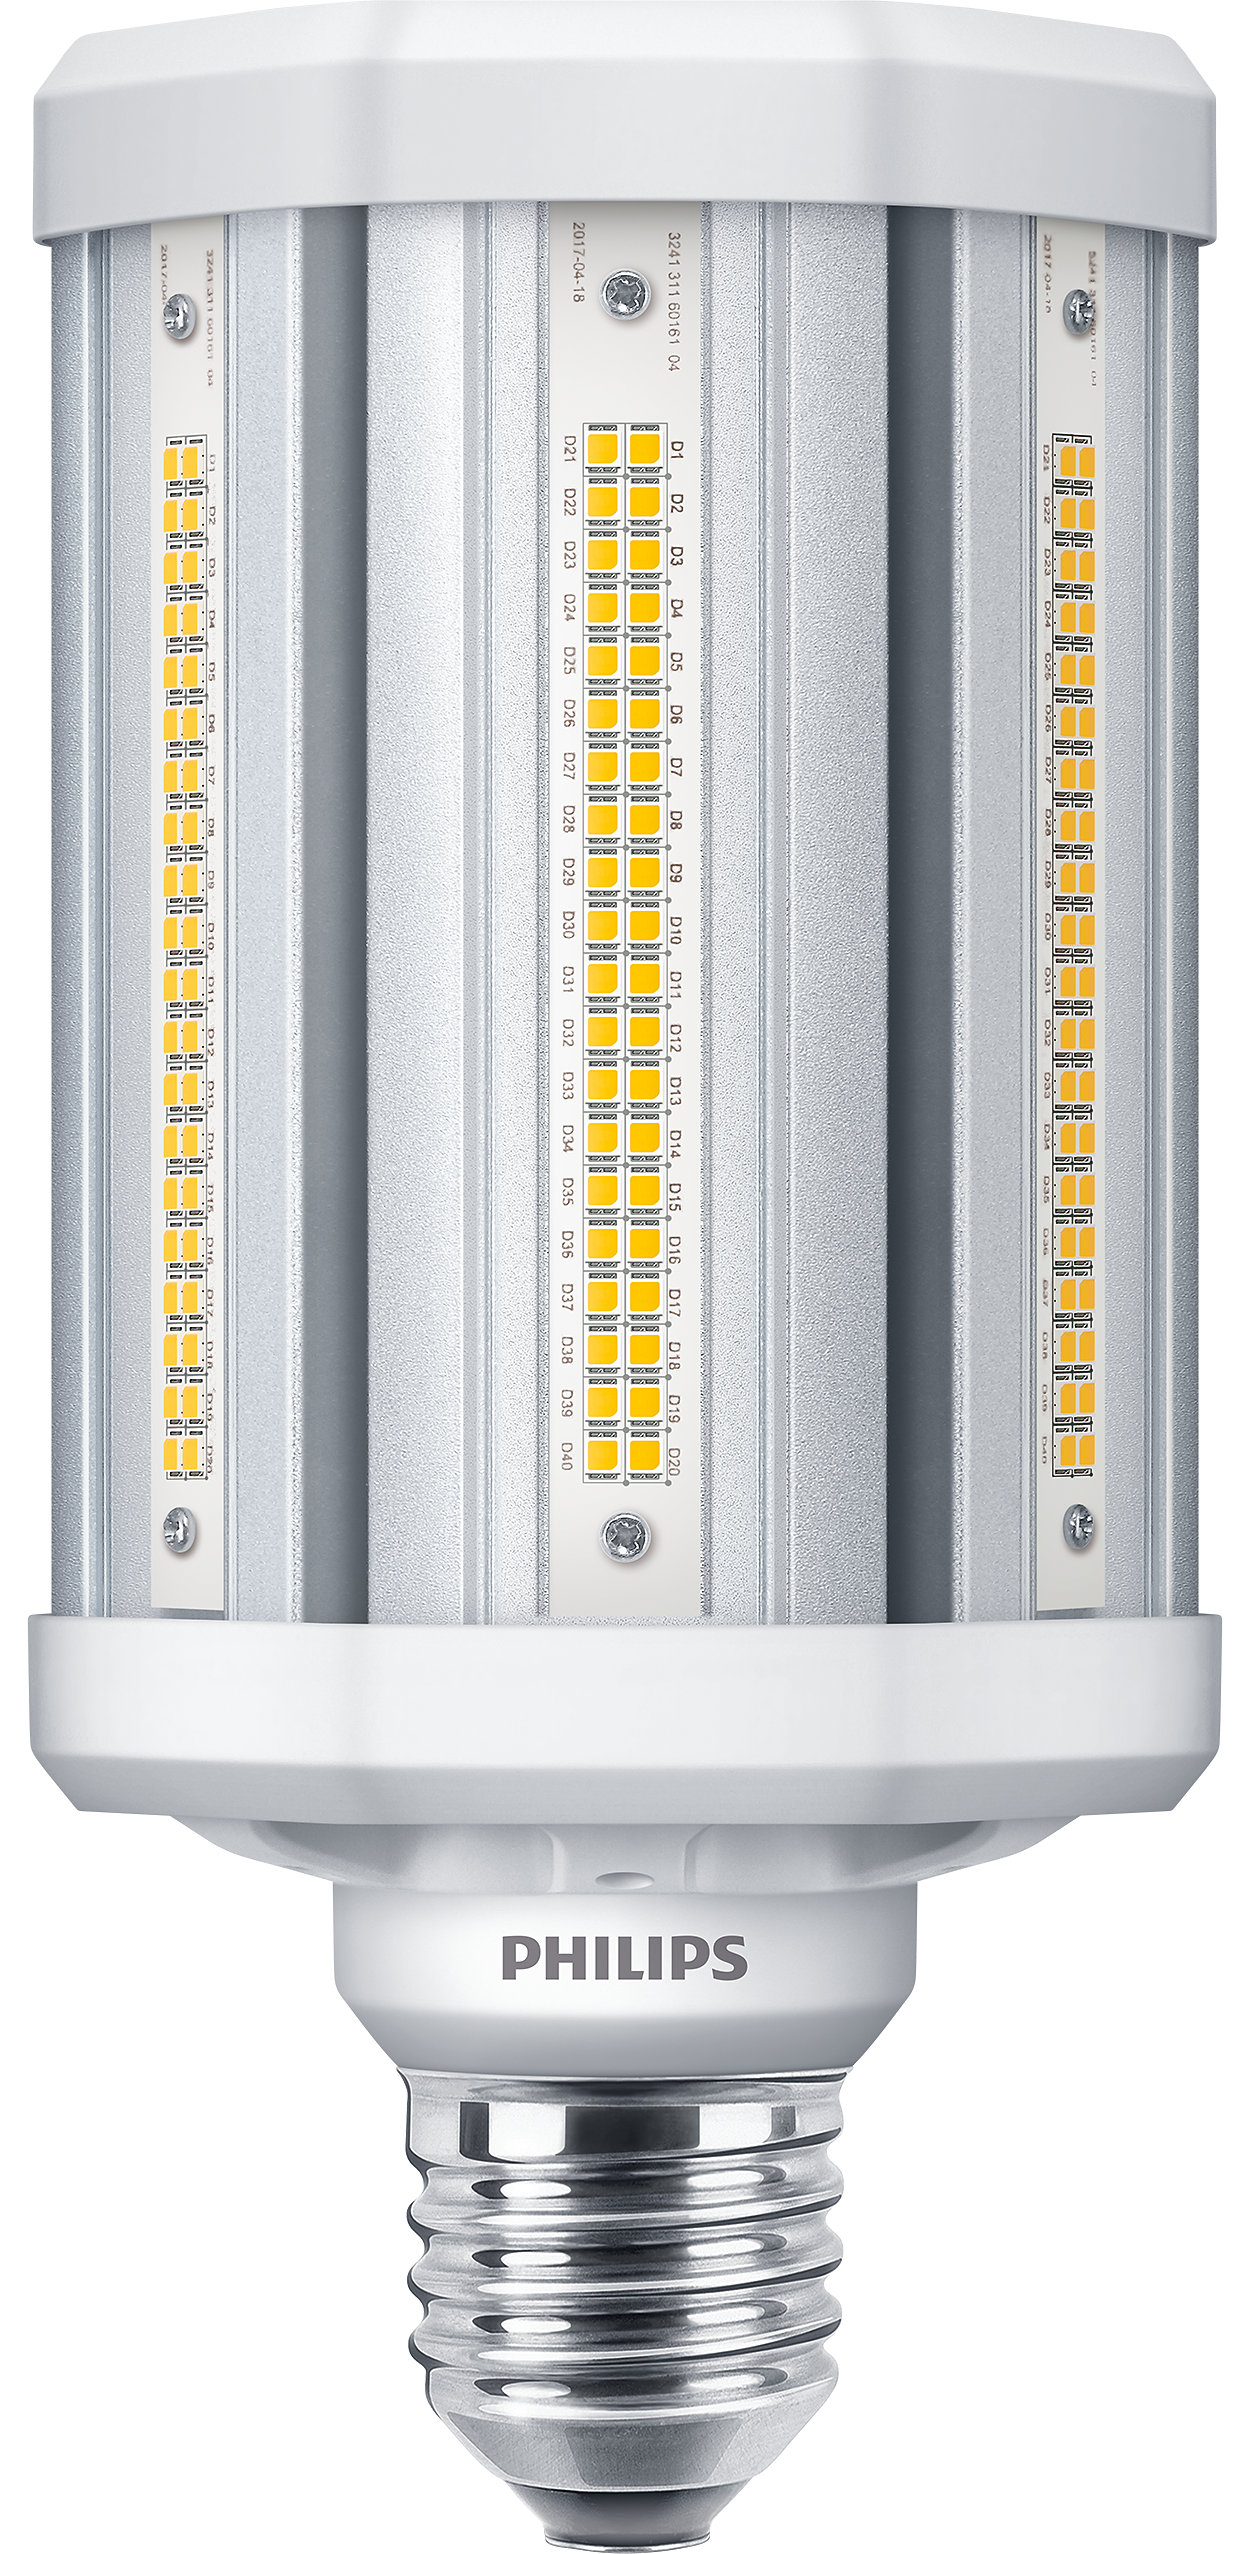 Cost-efficient alternative to easily upgrade urban lighting to LED